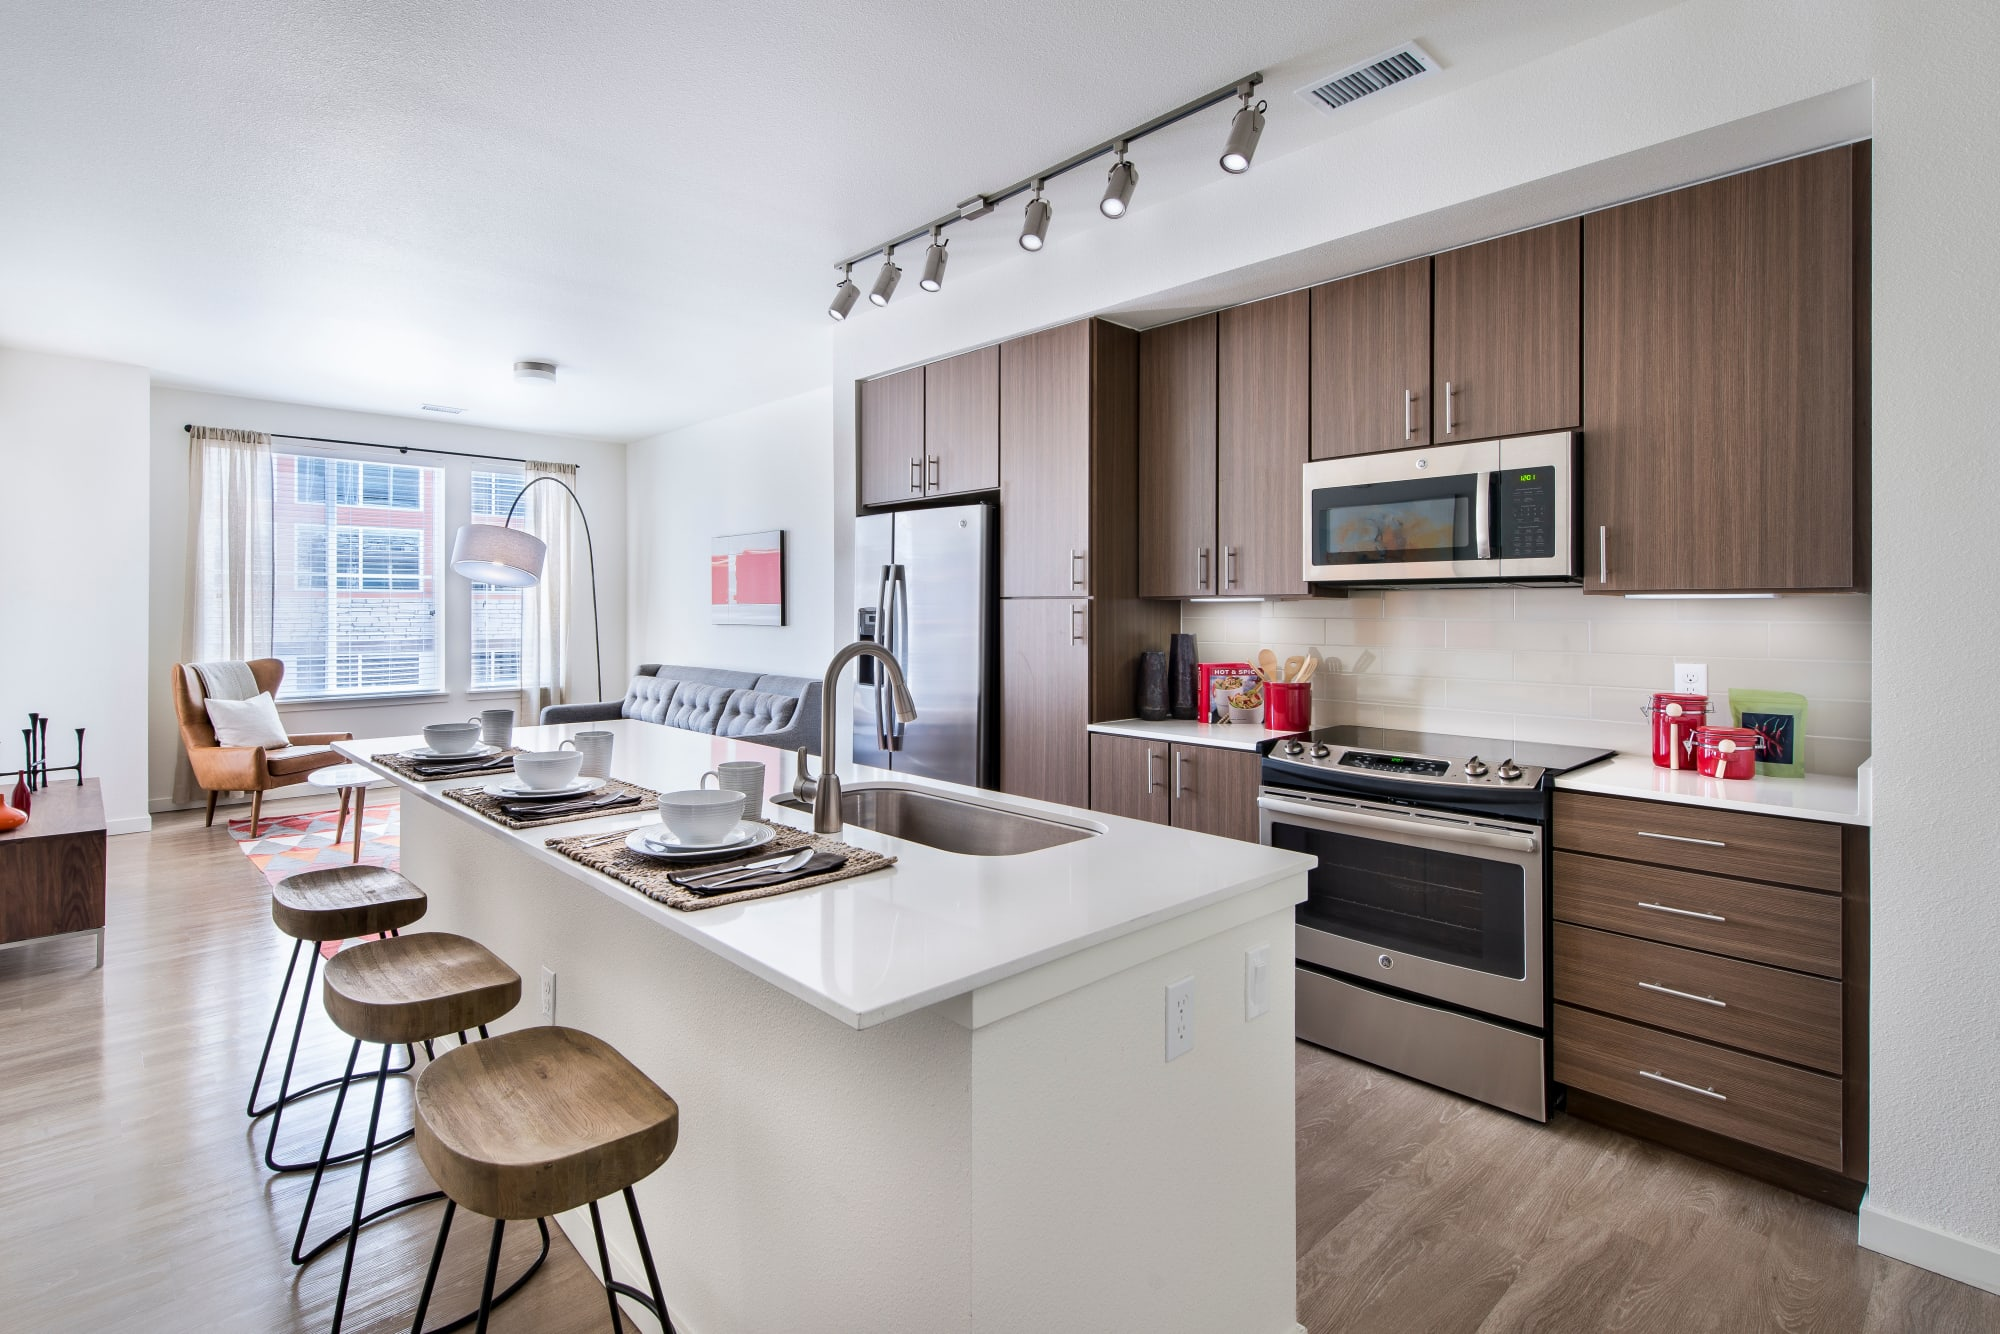 A kitchen with modern appliances at Elevate in Englewood, Colorado